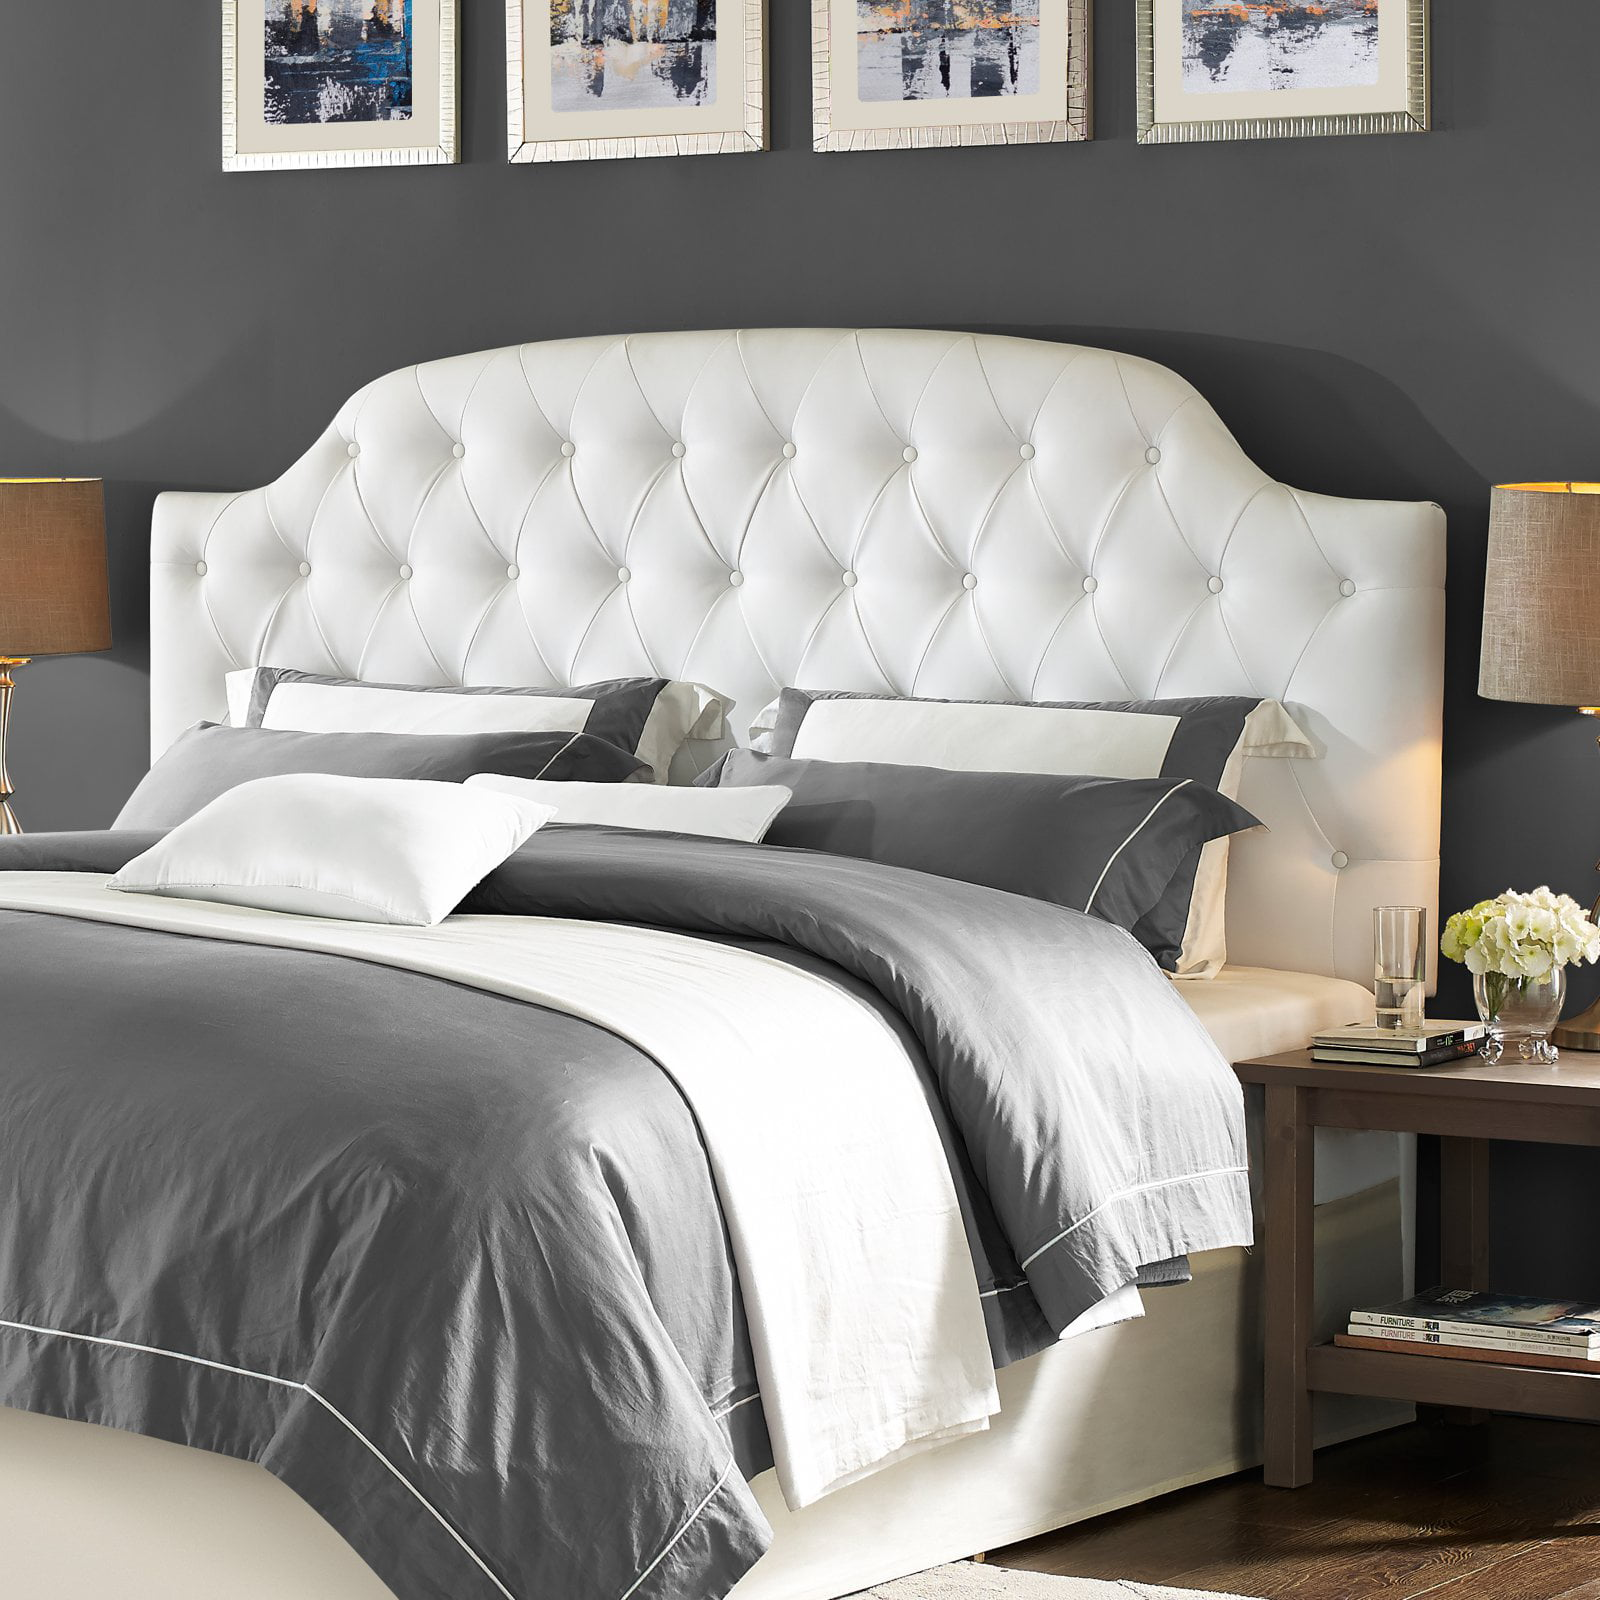 Dorel Living Lyric Button Tufted Faux Leather King Headboard, White by Dorel Asia